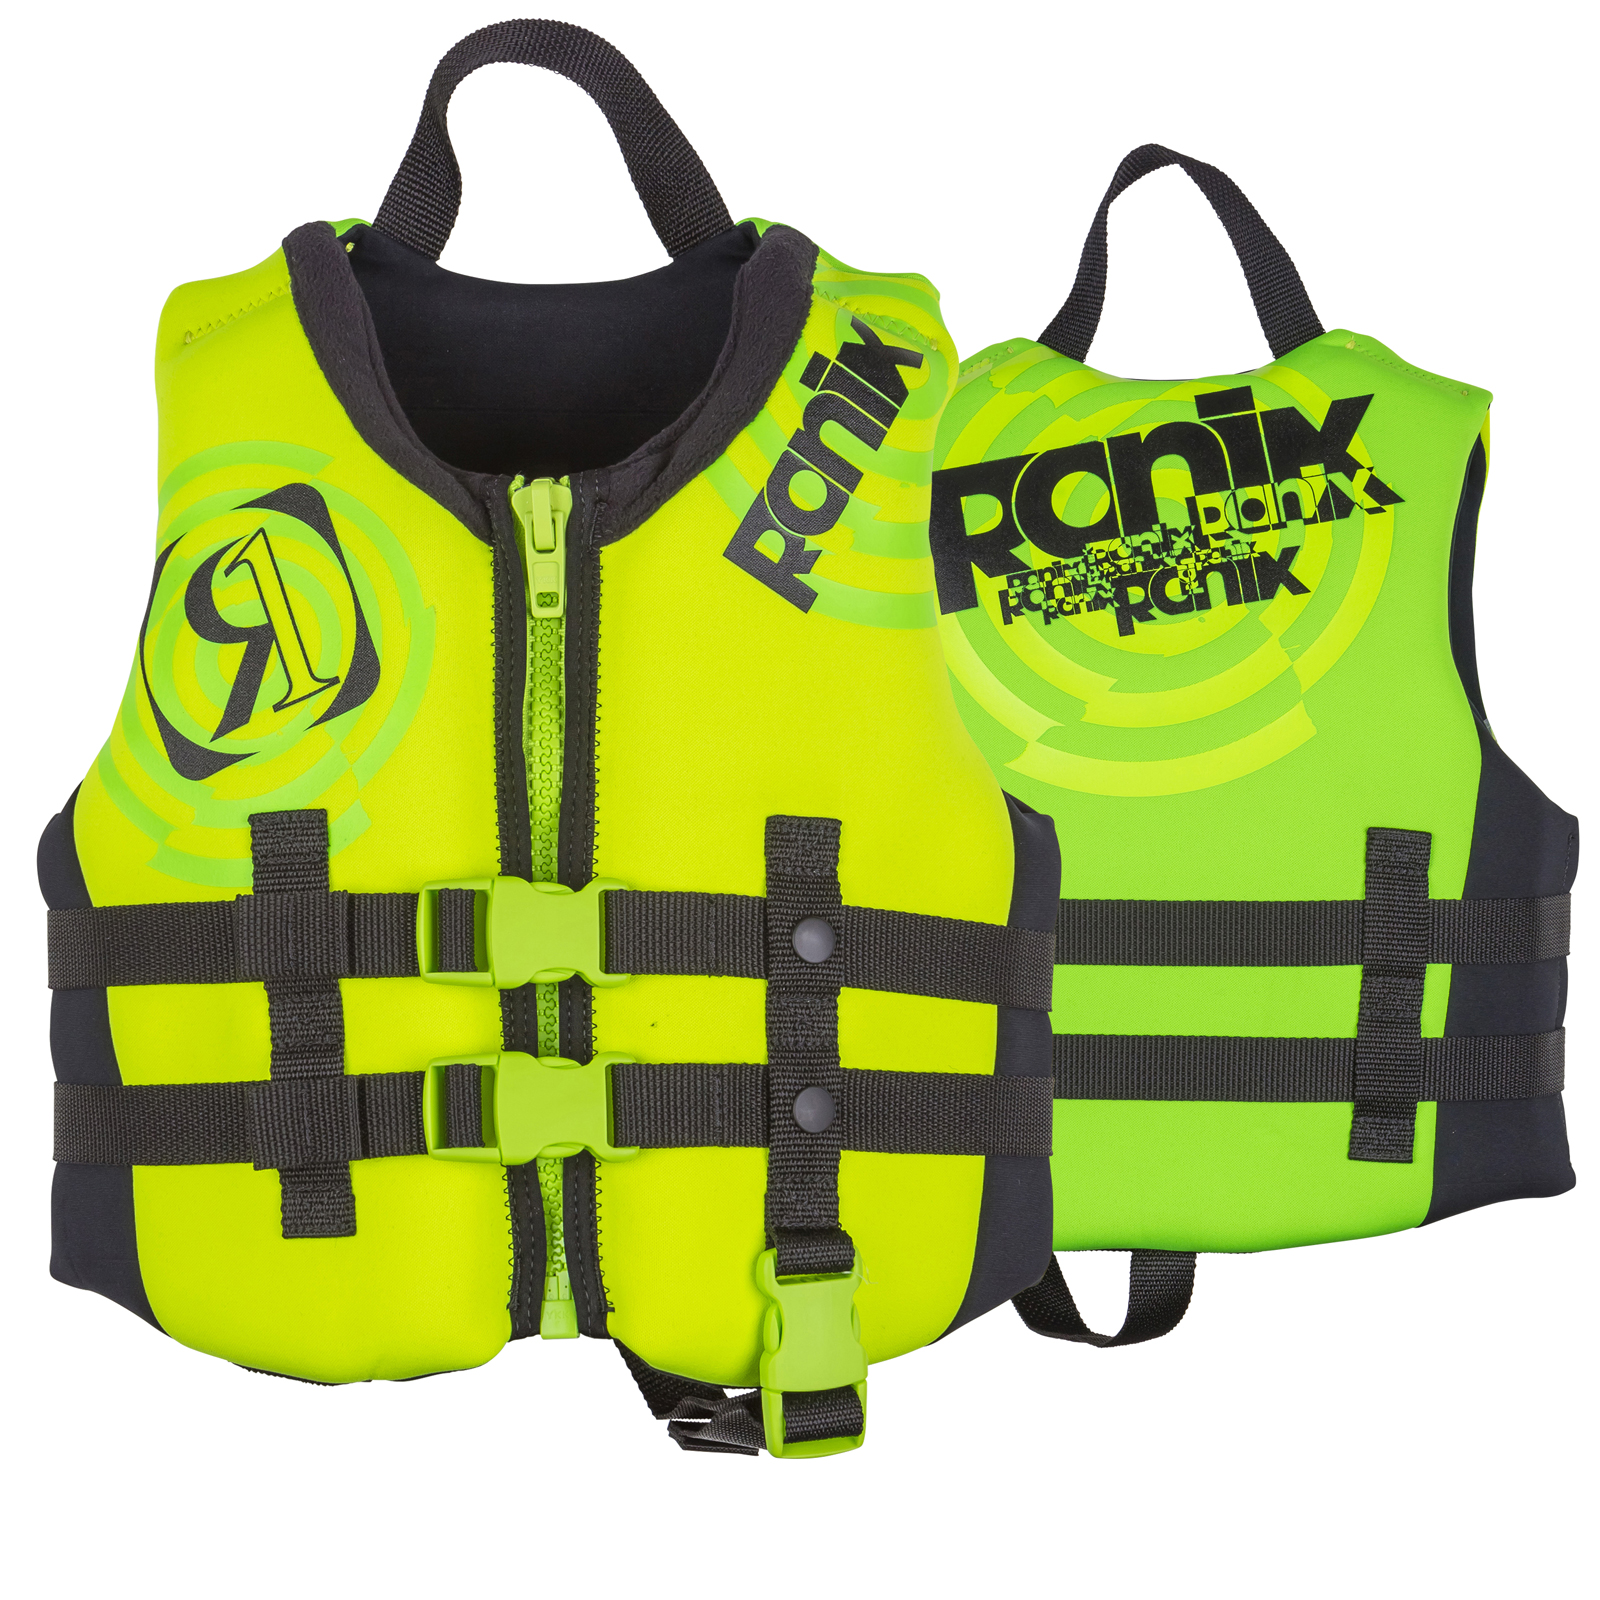 VISION BOY'S CHILD VEST RONIX 2017